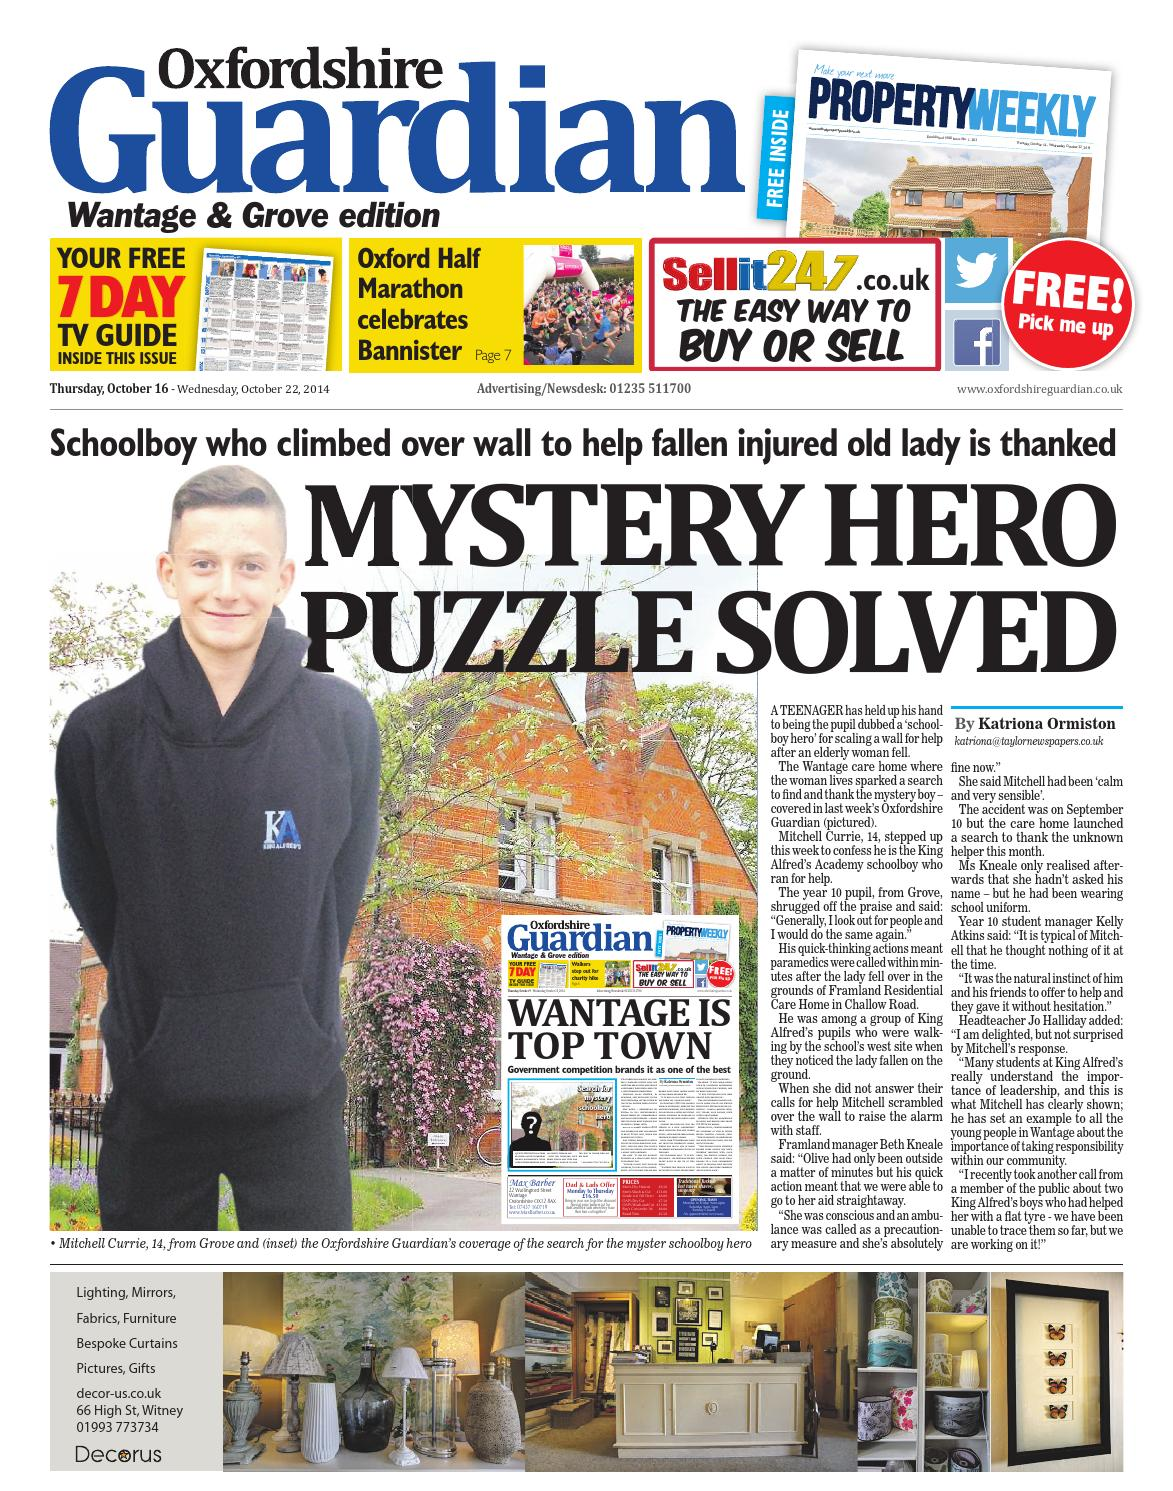 d4eb707728e0 16 october 2014 oxfordshire guardian wantage by Taylor Newspapers - issuu